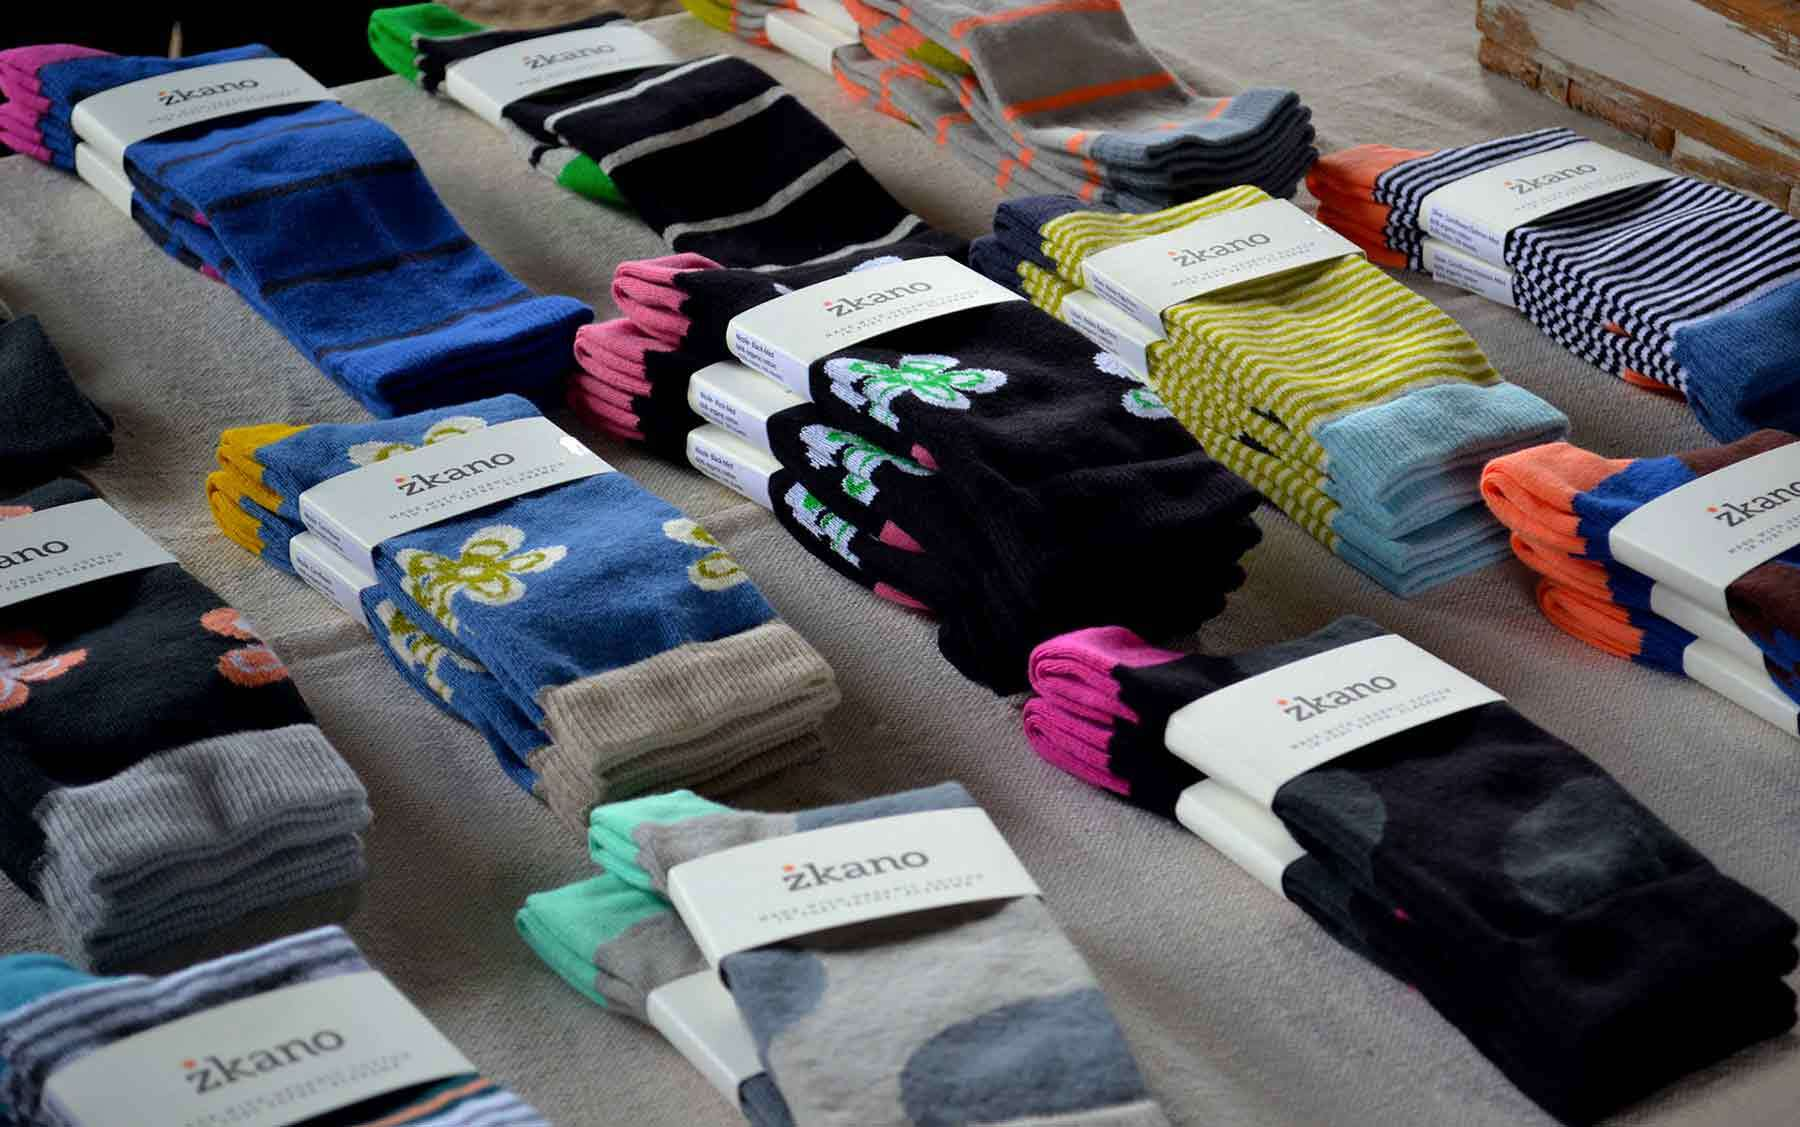 Rows of colorful and patterened sock pairs wrapped in paper Zkano branding